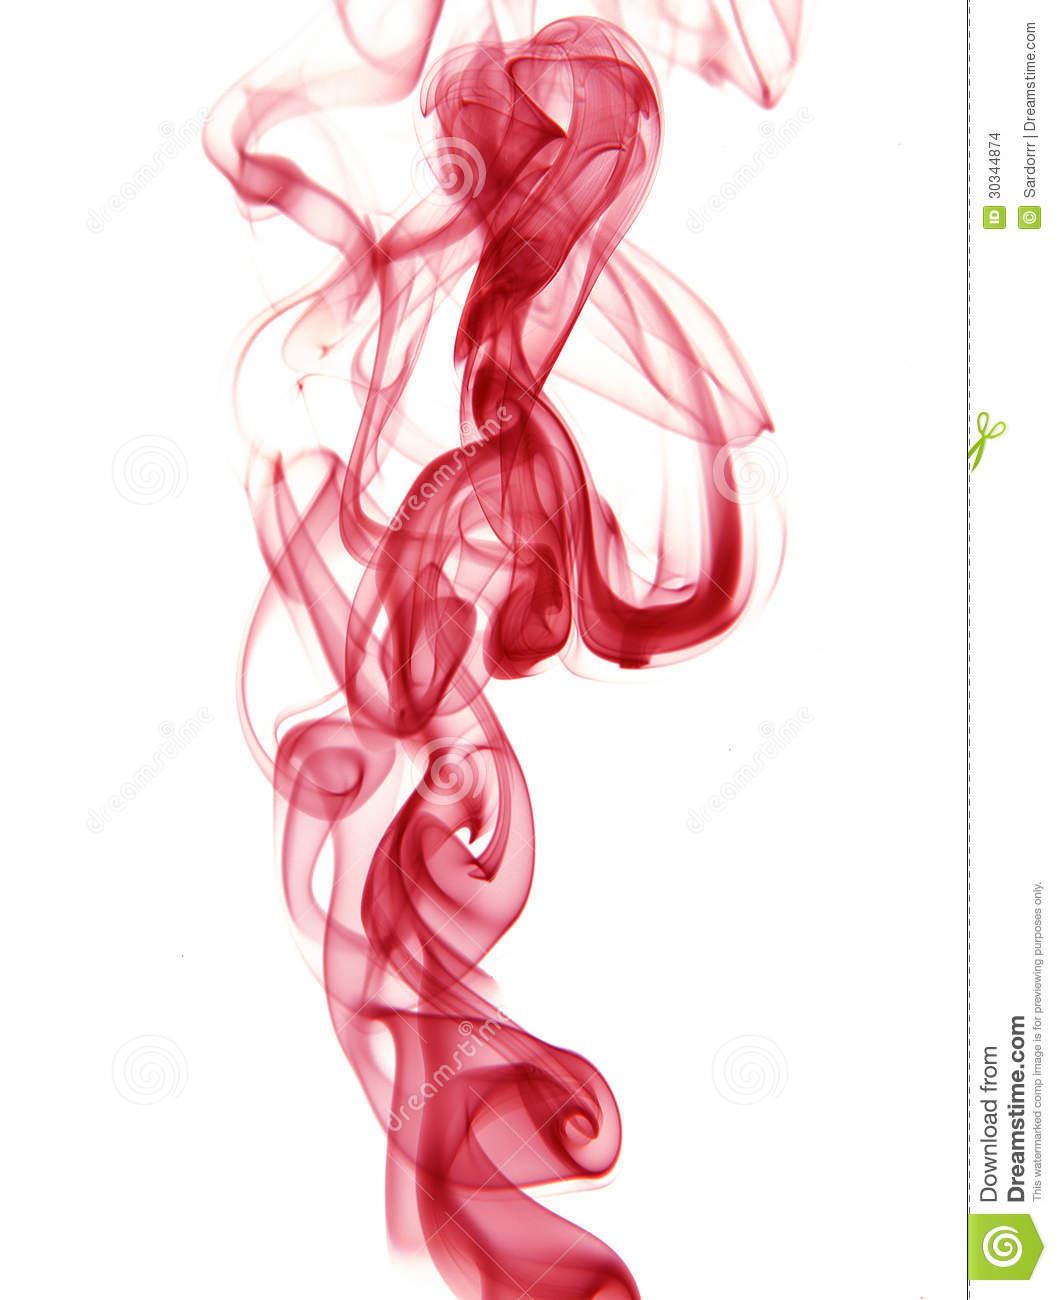 Red smoke clipart #10